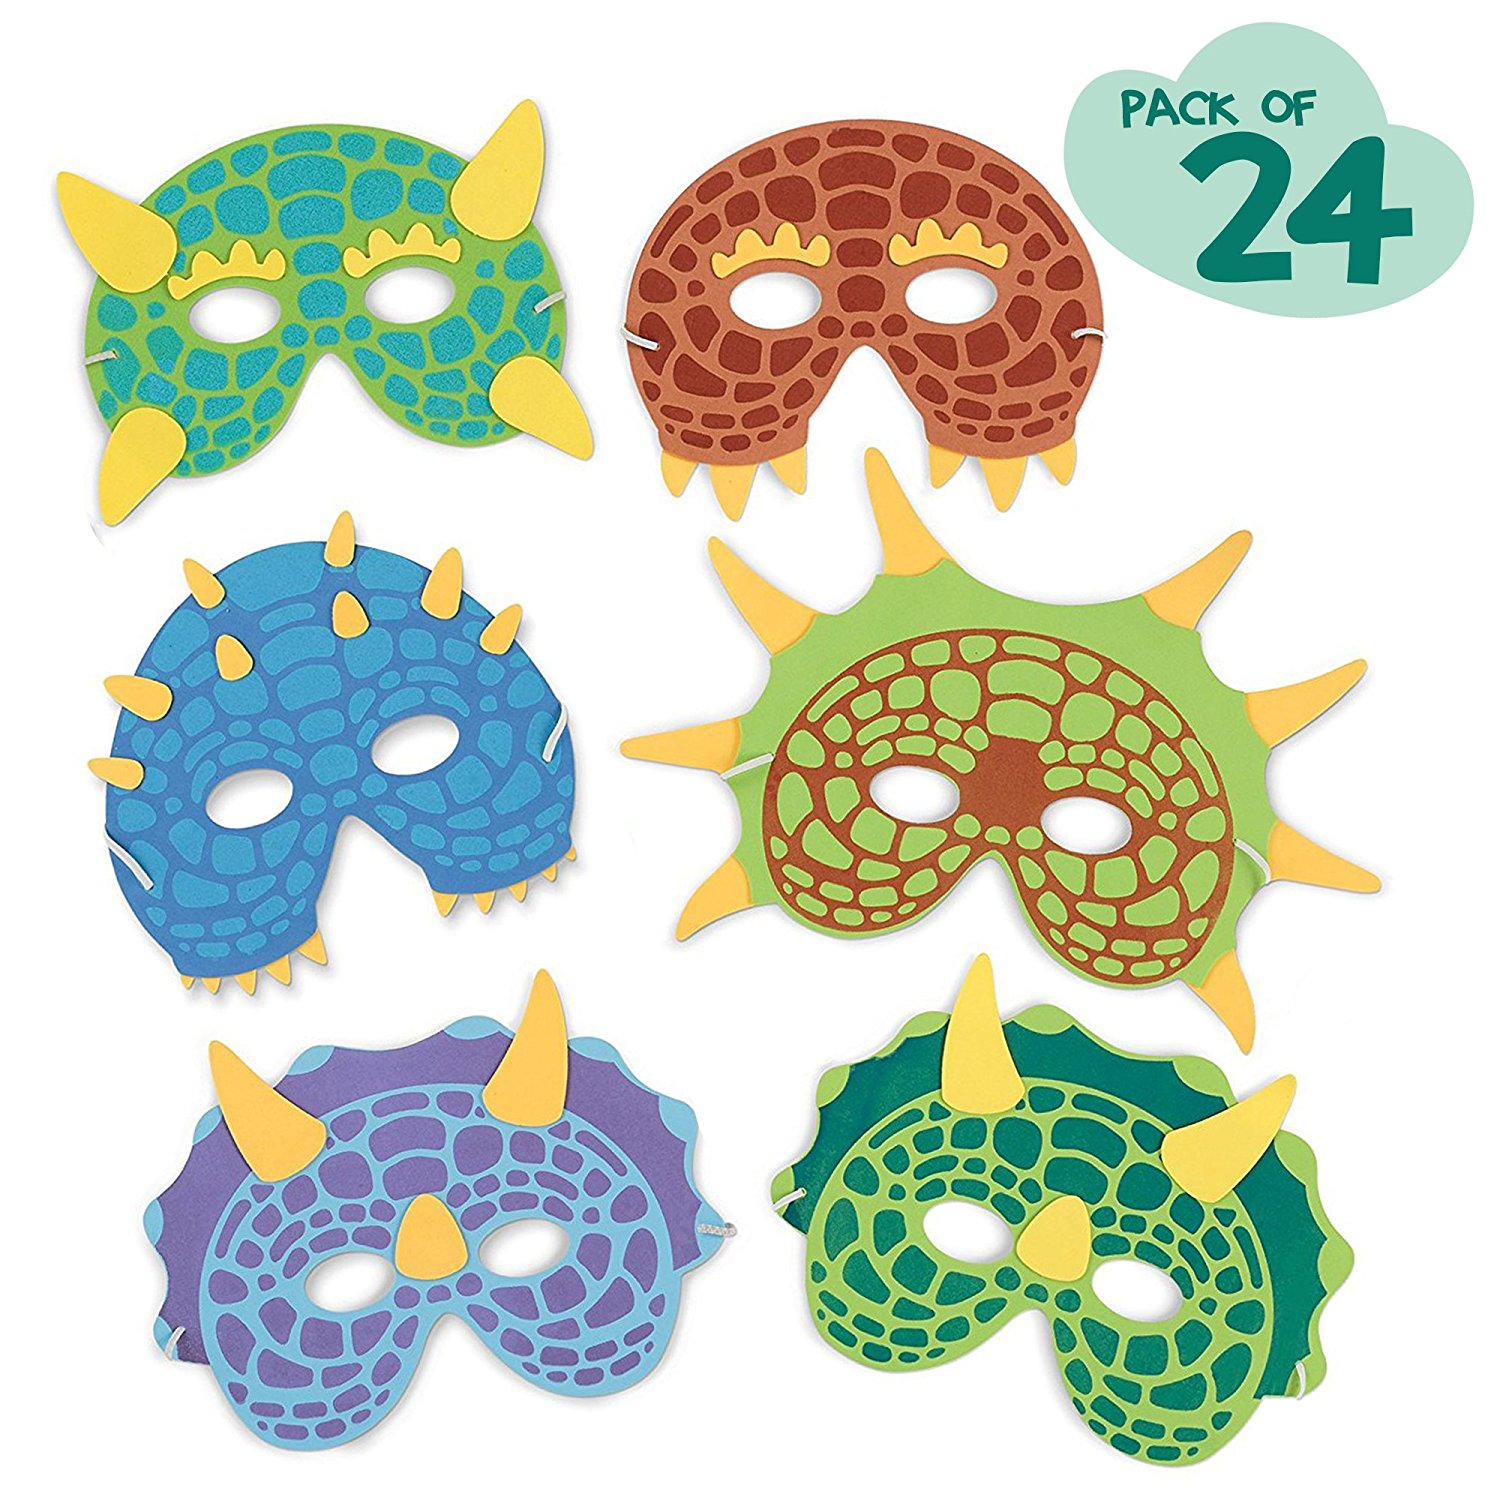 Dinosaur Birthday Party Supplies 24 Dinosaur Party Masks